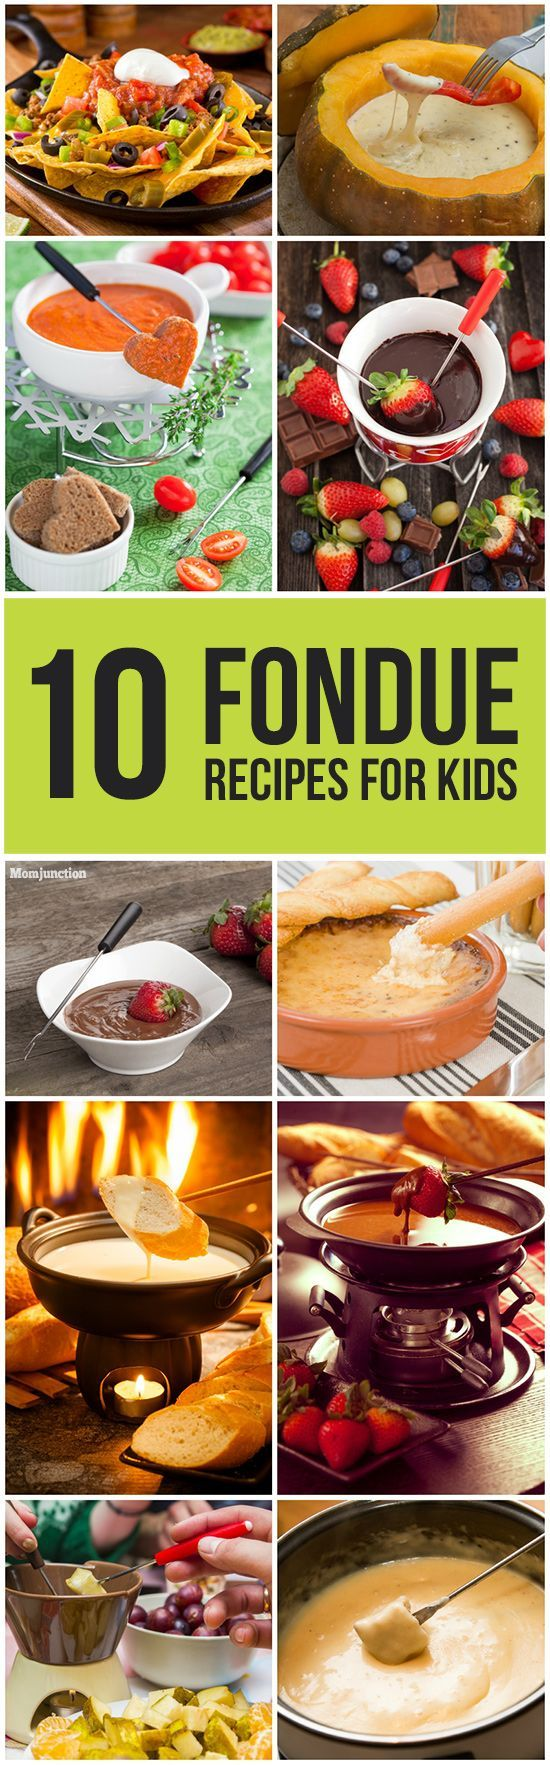 Top 10 Cheese Fondue Recipes For Kids To Try